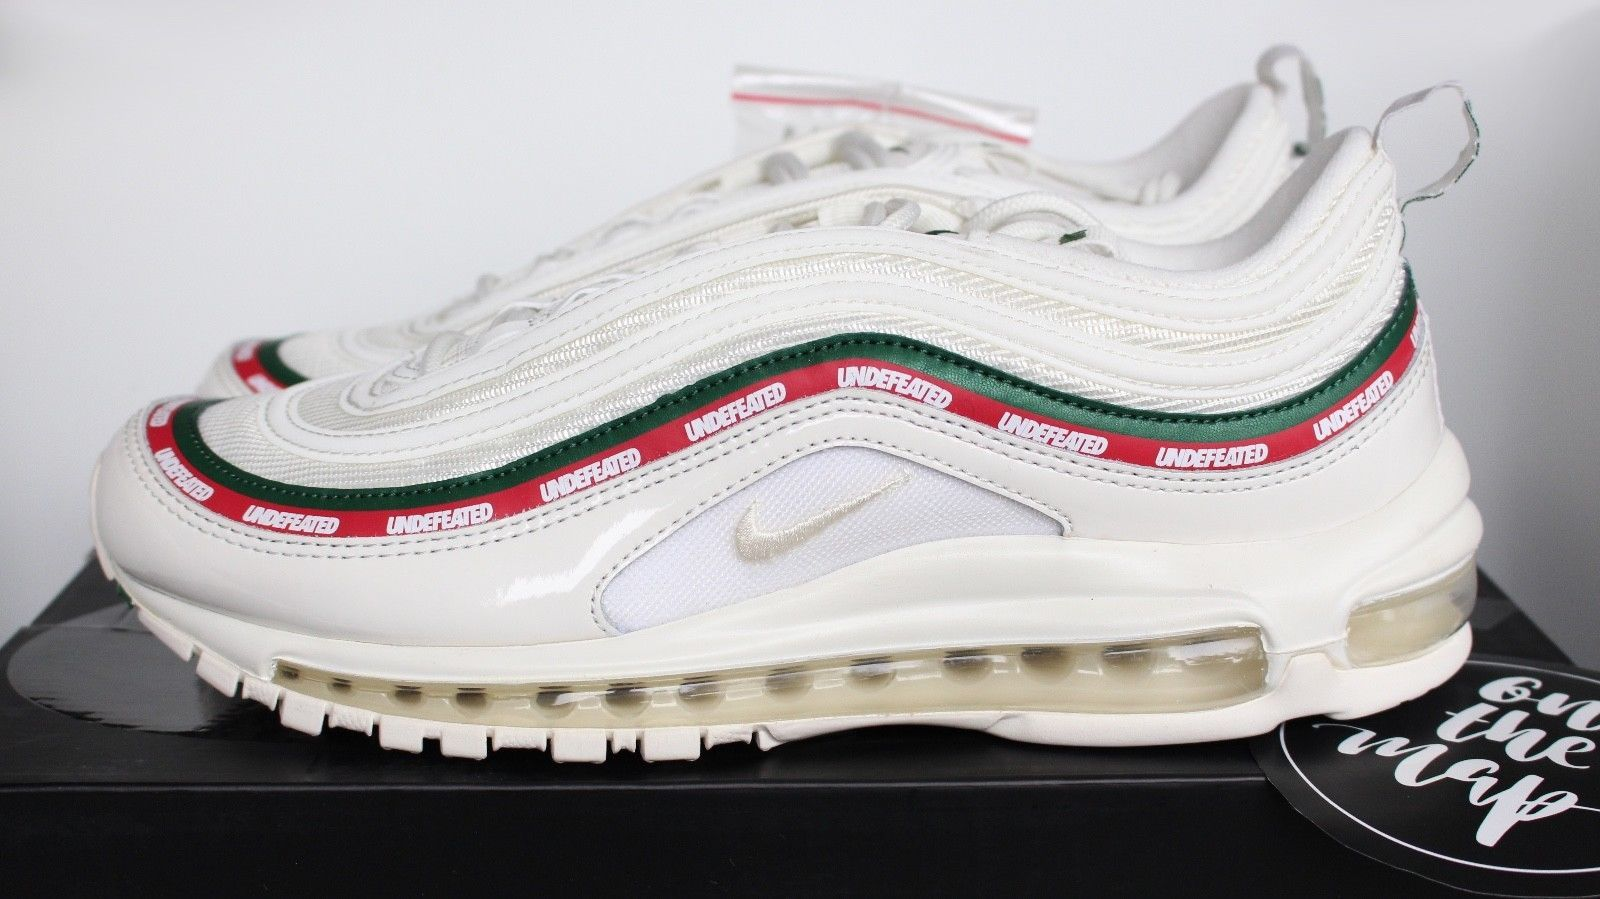 Nike x Undefeated Air Max 97 OG White Cream Red UNDFTD UK